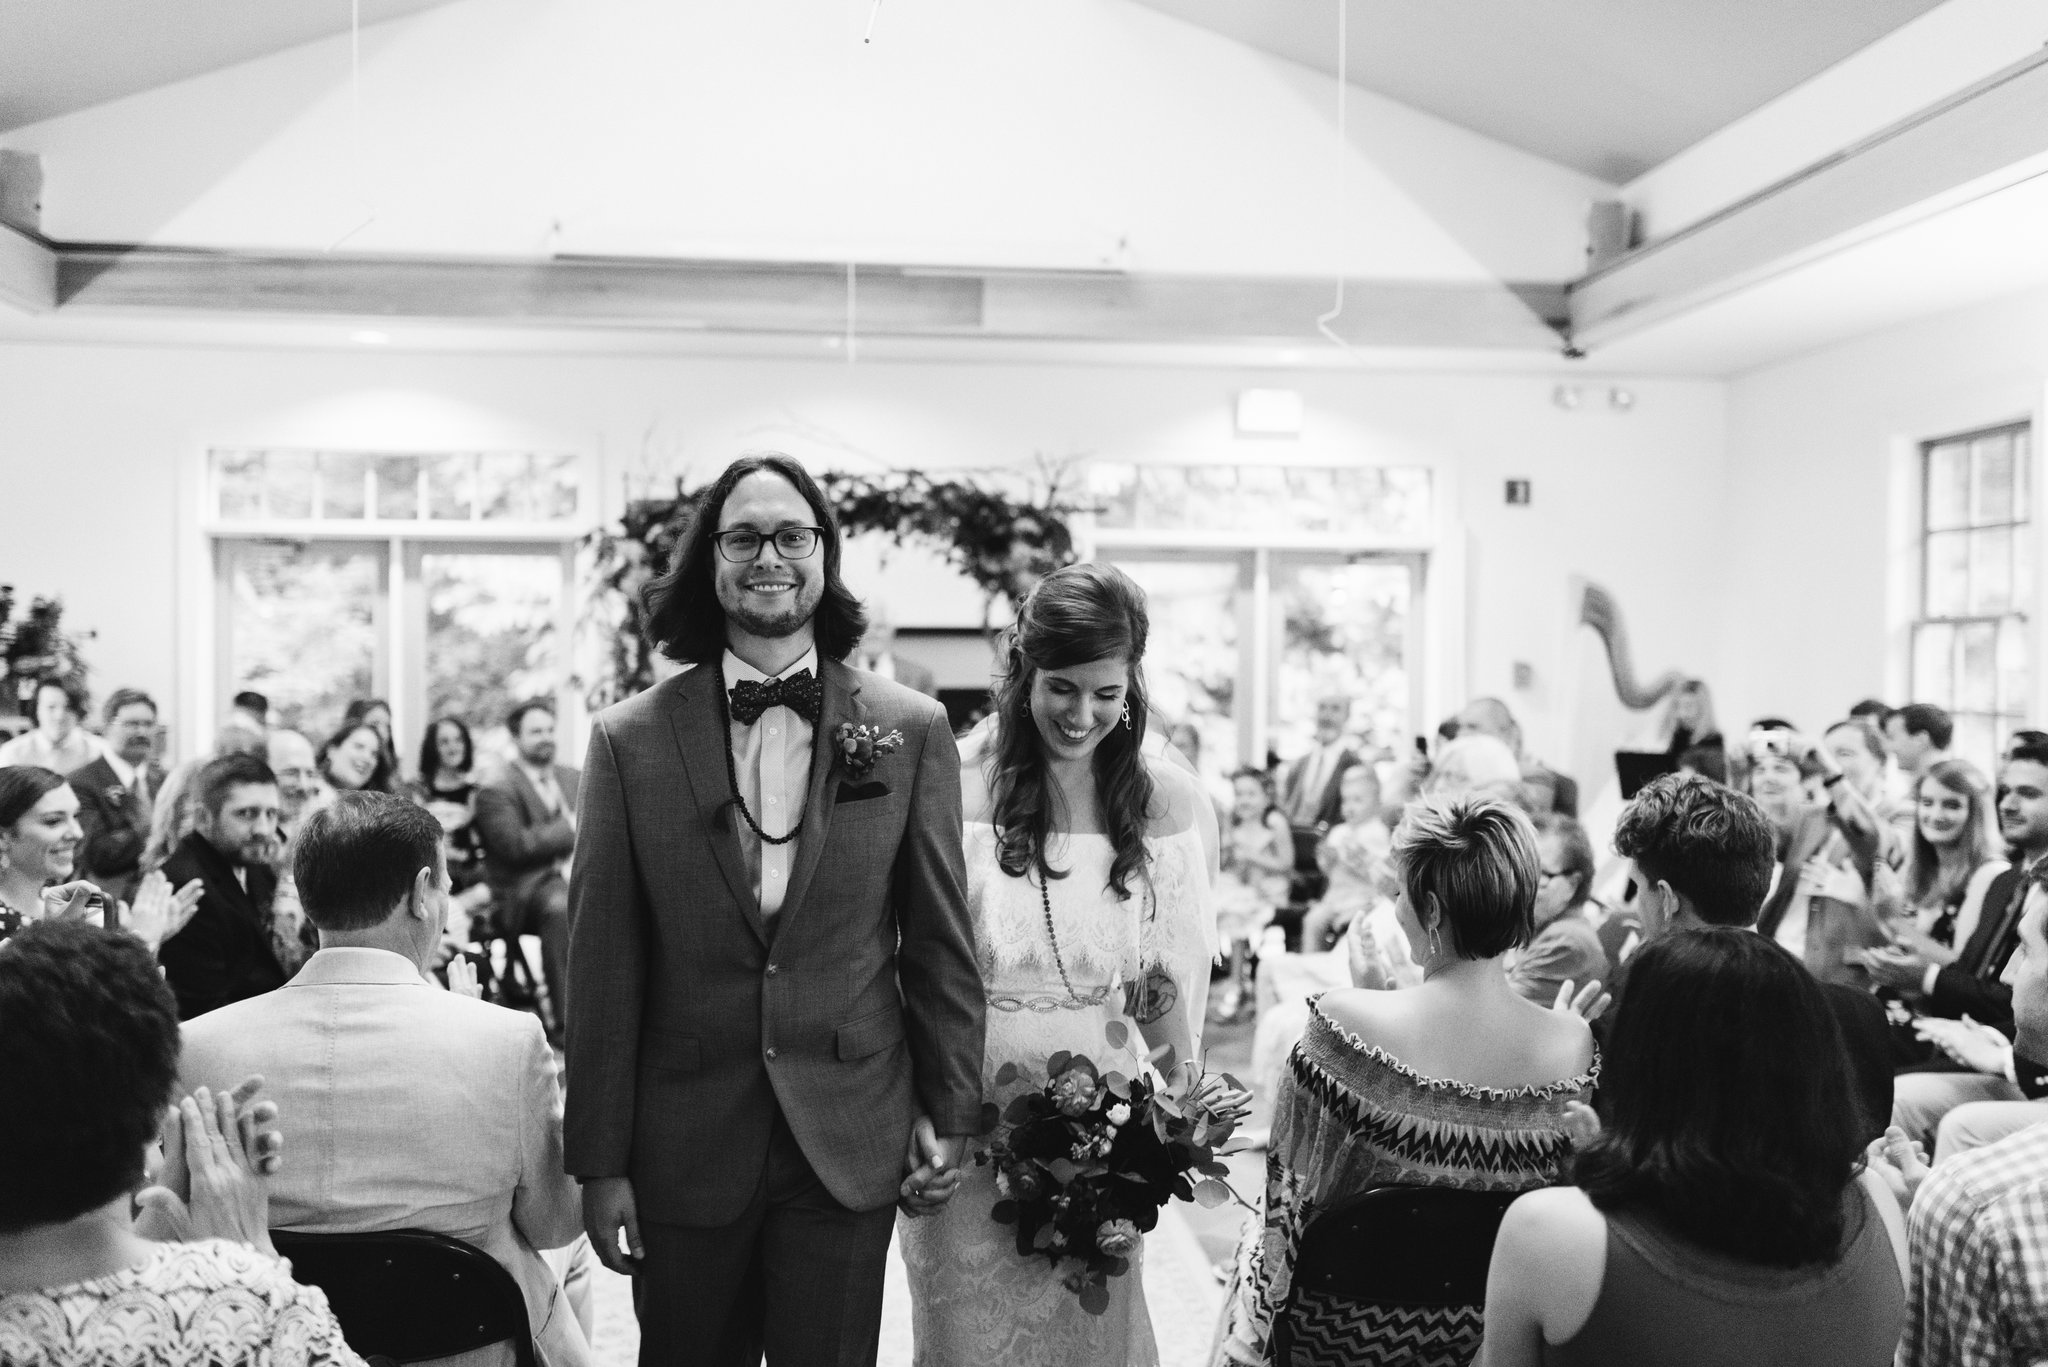 Annapolis, Quaker Wedding, Maryland Wedding Photographer, Intimate, Small Wedding, Vintage, DIY, Bride and groom Walking Down Aisle Together, Black and White Photo